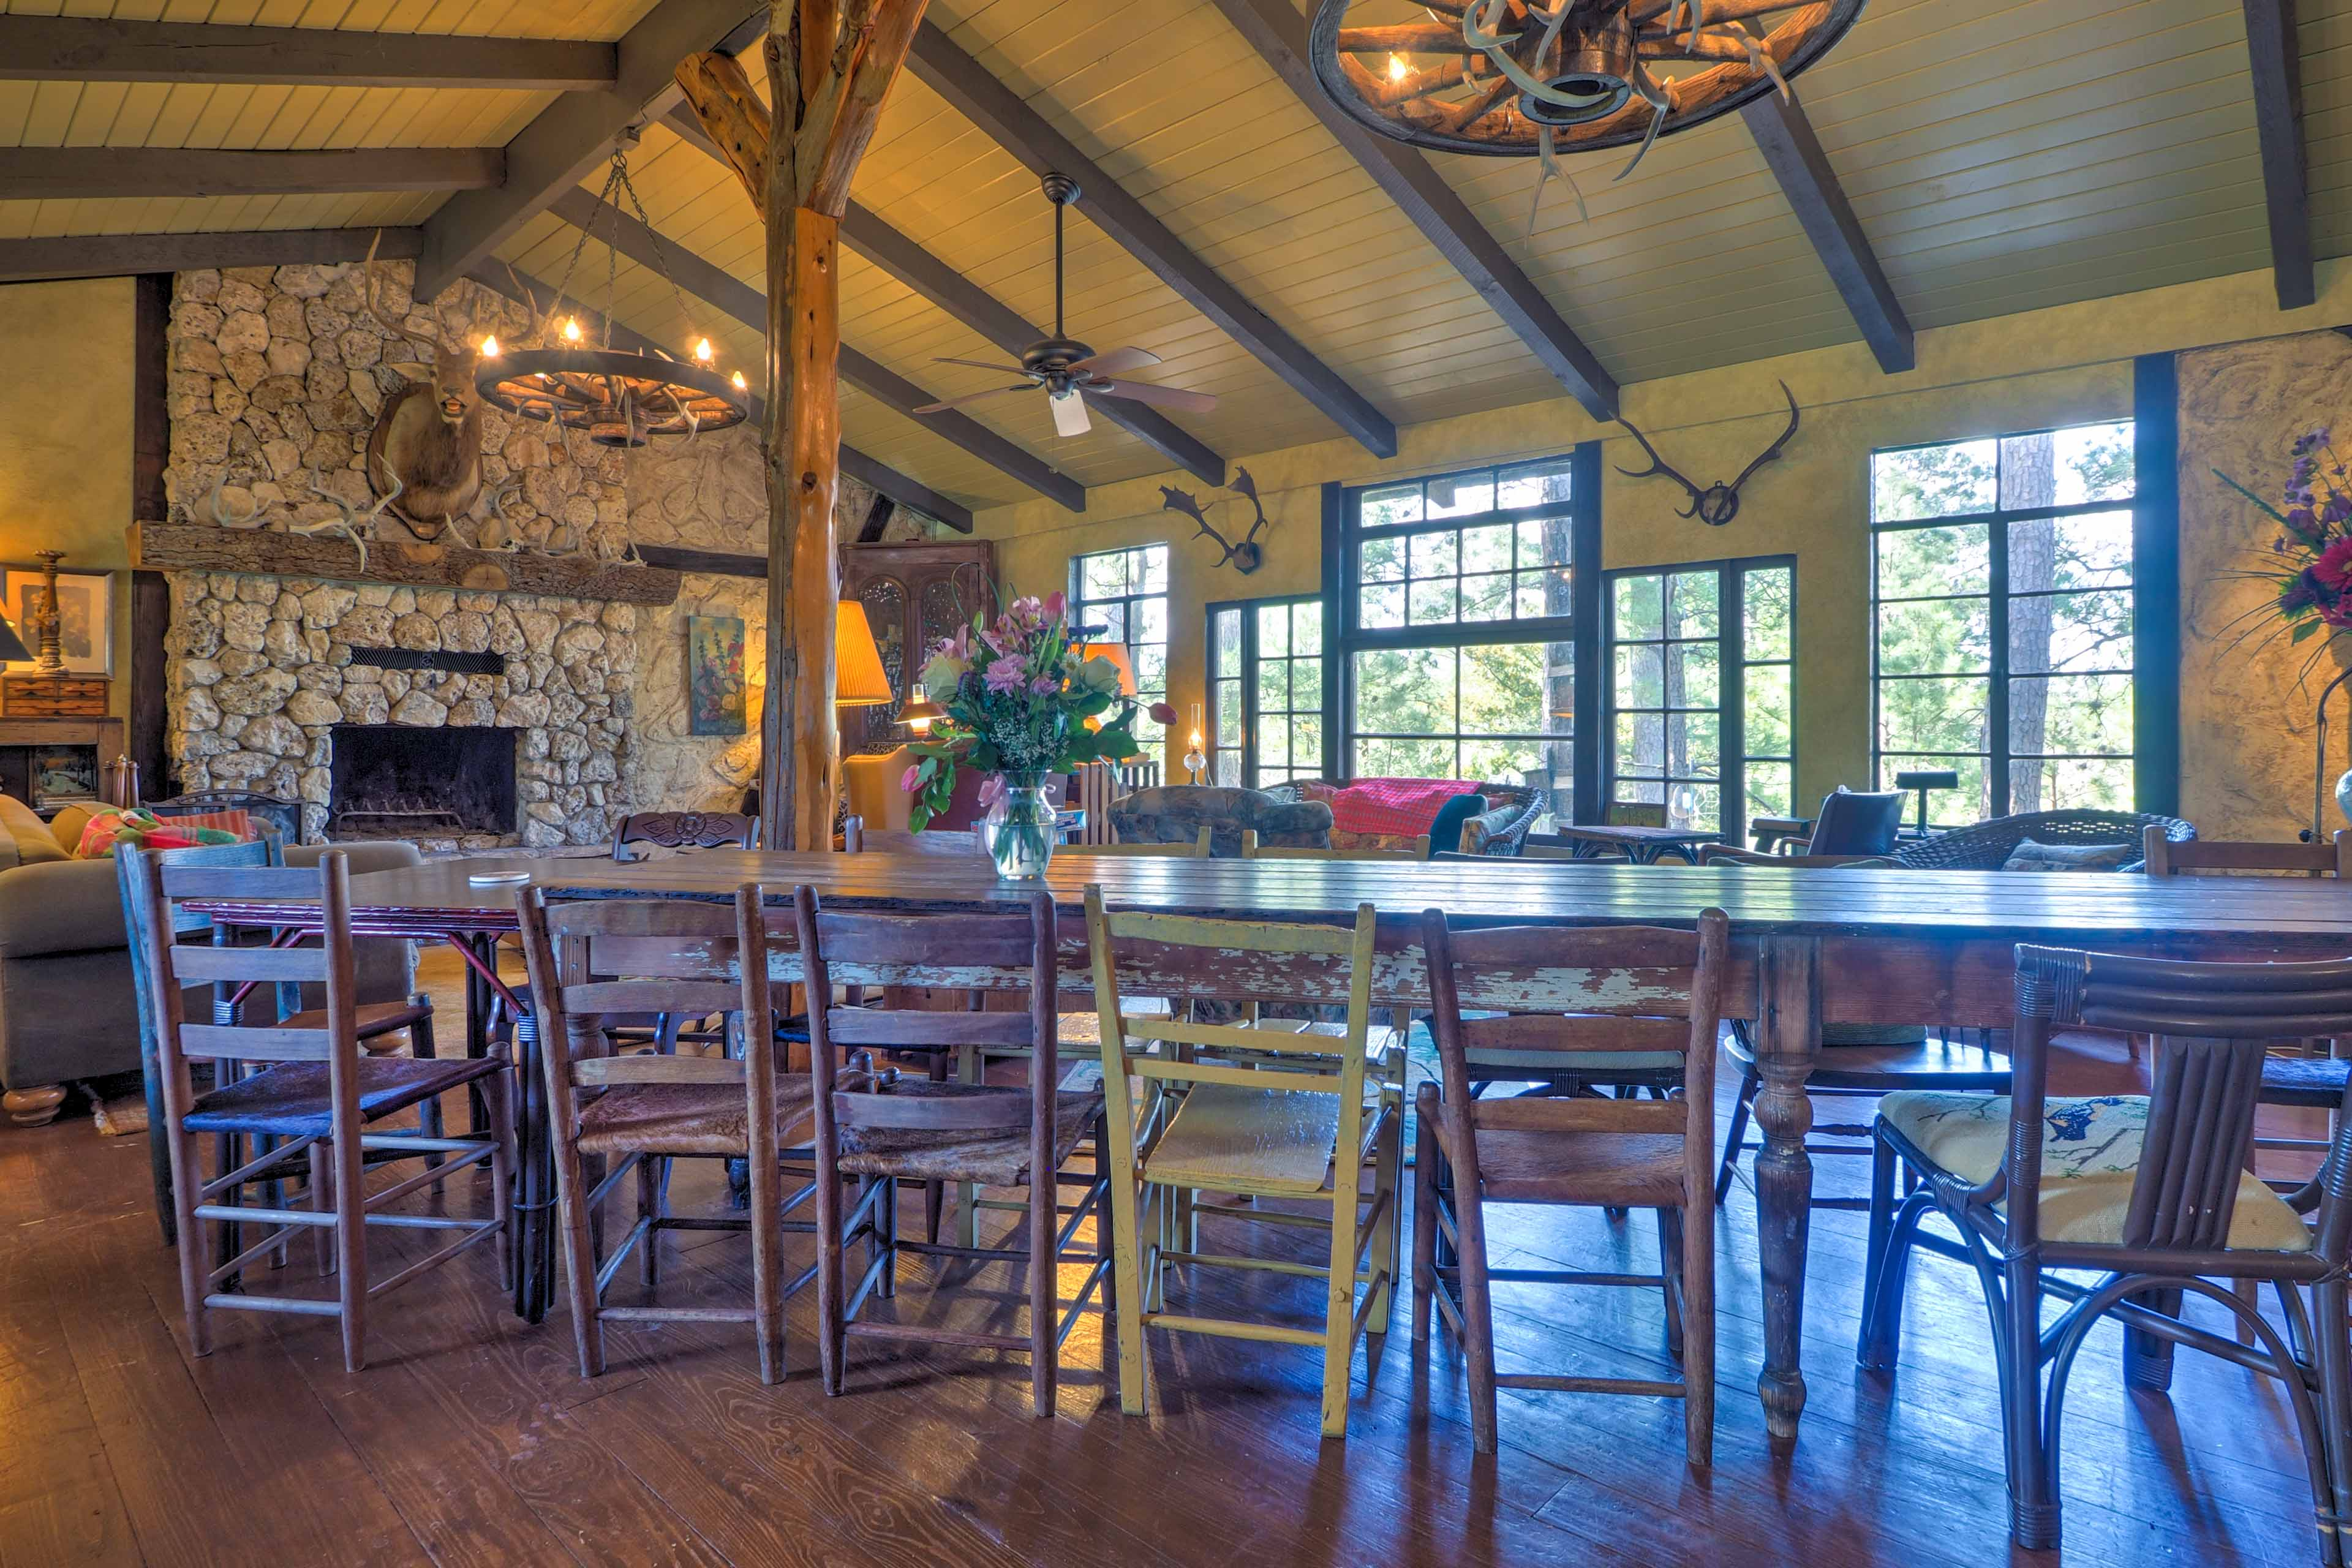 Gather with everyone at the large dining table to enjoy food and memories.